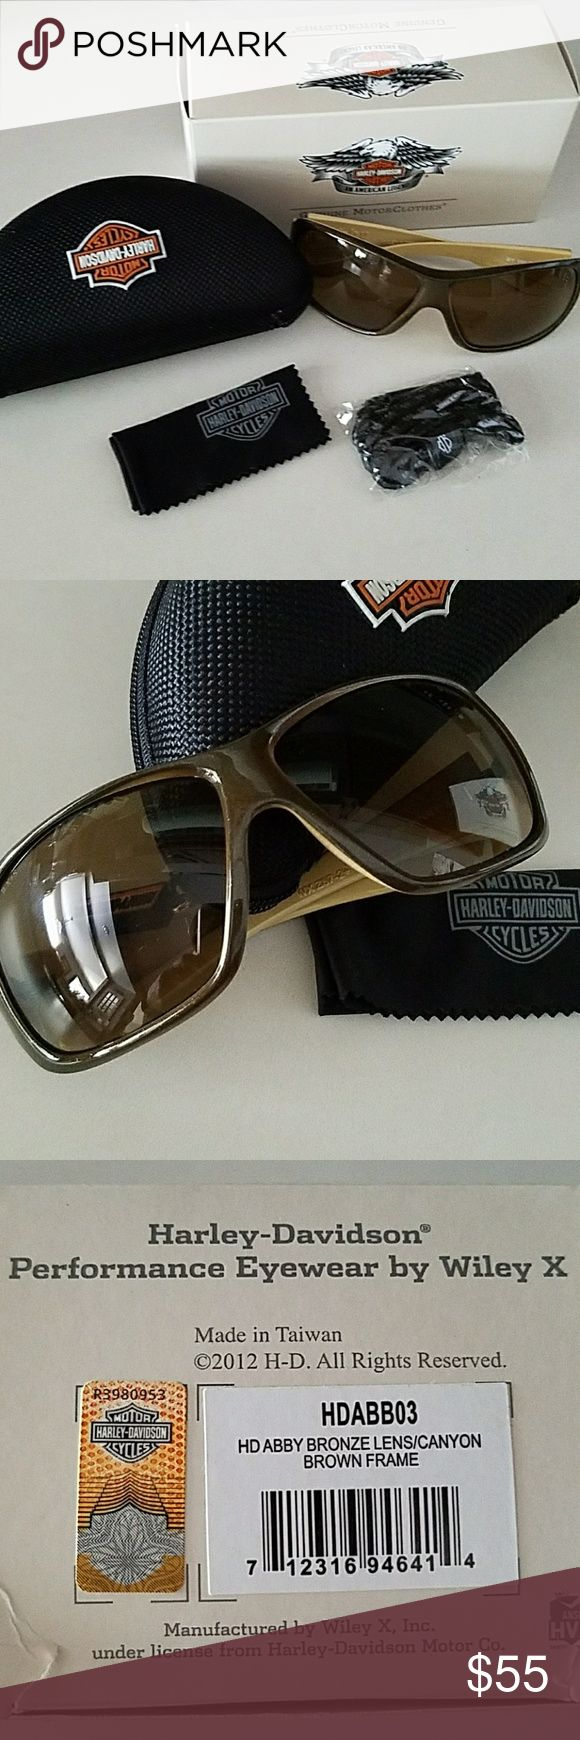 Harley Davidson Wiley X womens eyewear Brand-new,  Harley Davidson Wiley X performance eyewear, bronze lense canyon brown frame,  received as a gift and i need prescription eyewear 😒, no trades. Harley-Davidson Accessories Sunglasses